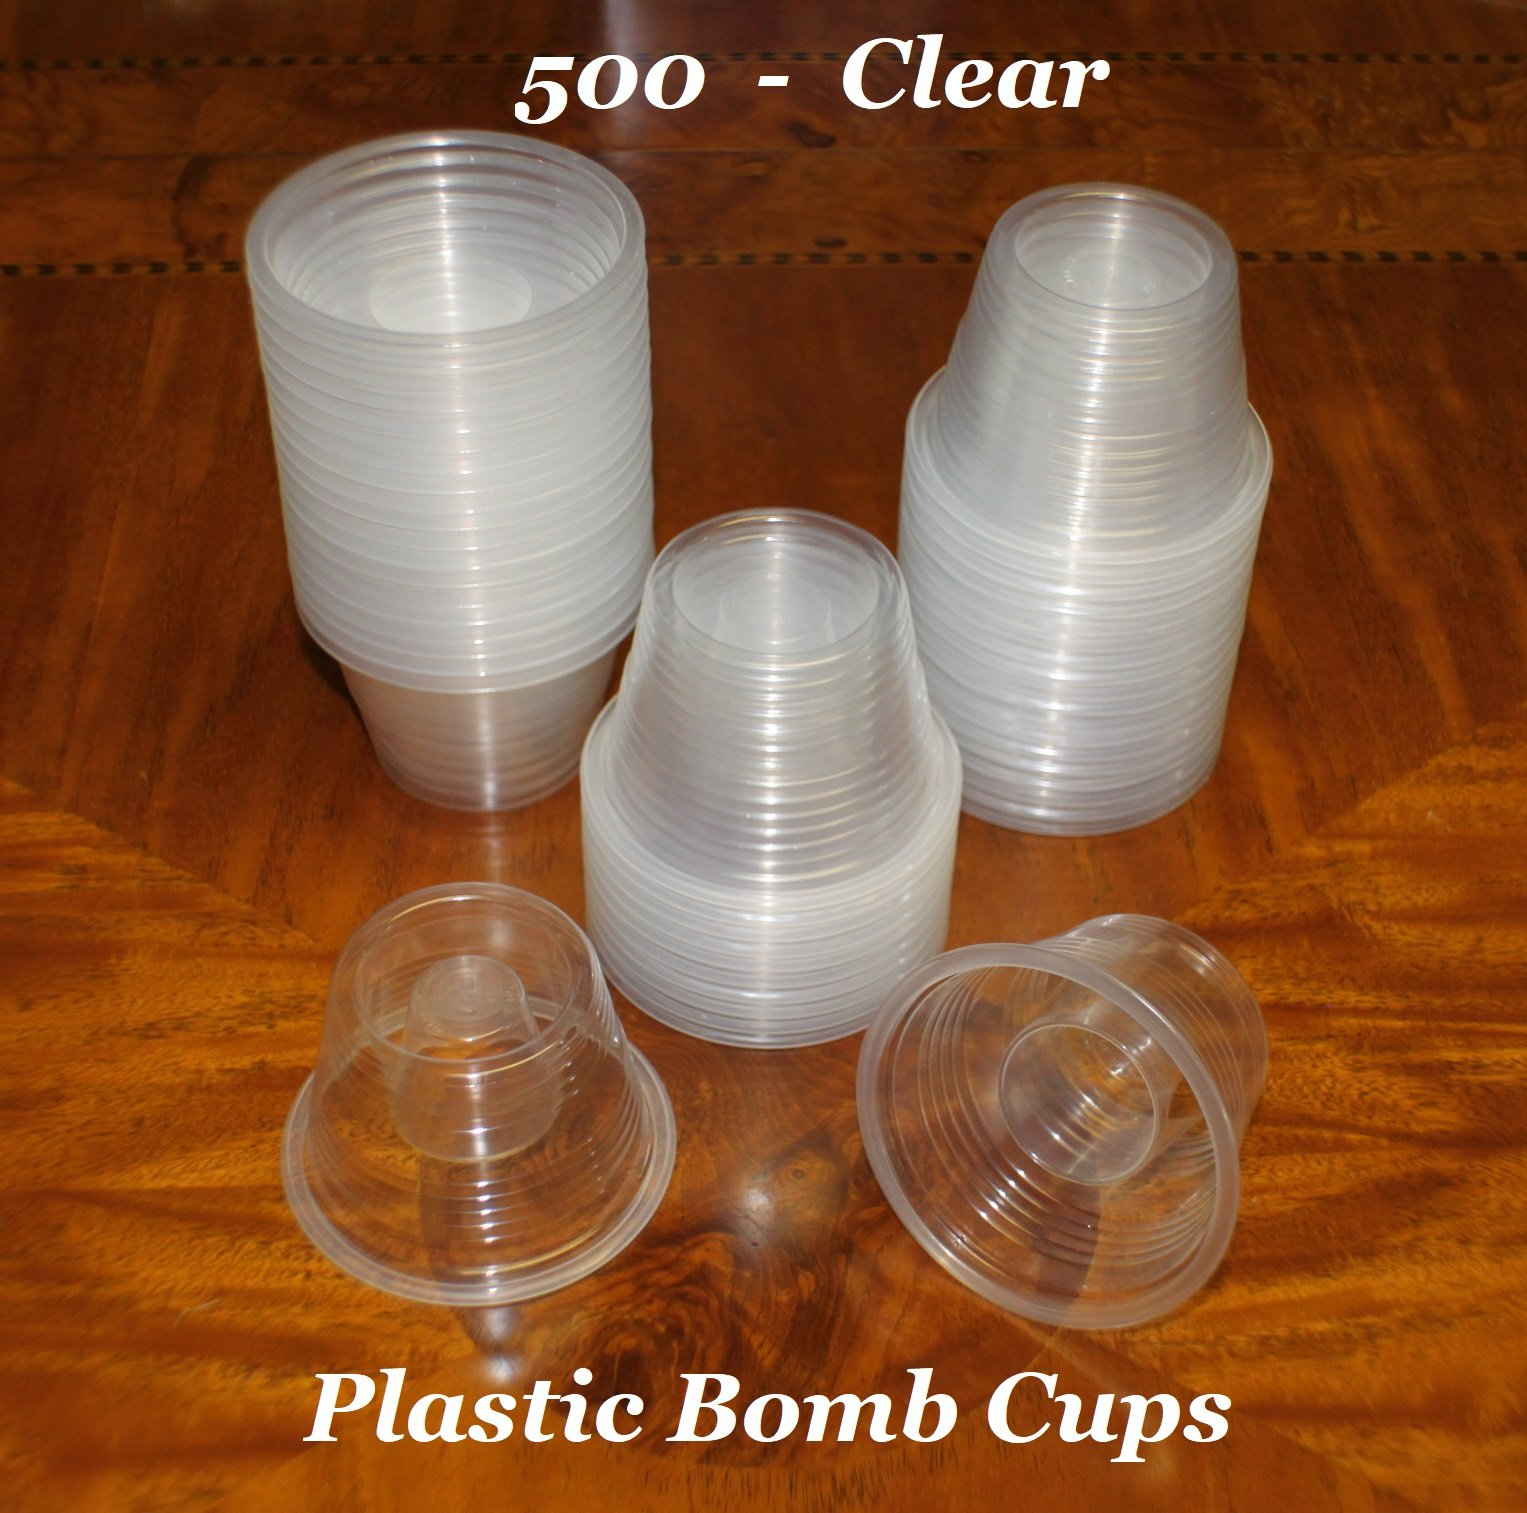 Clear Disposable Plastic Power Bomber Shot Cups or Bomb Glasses by Polar Ice